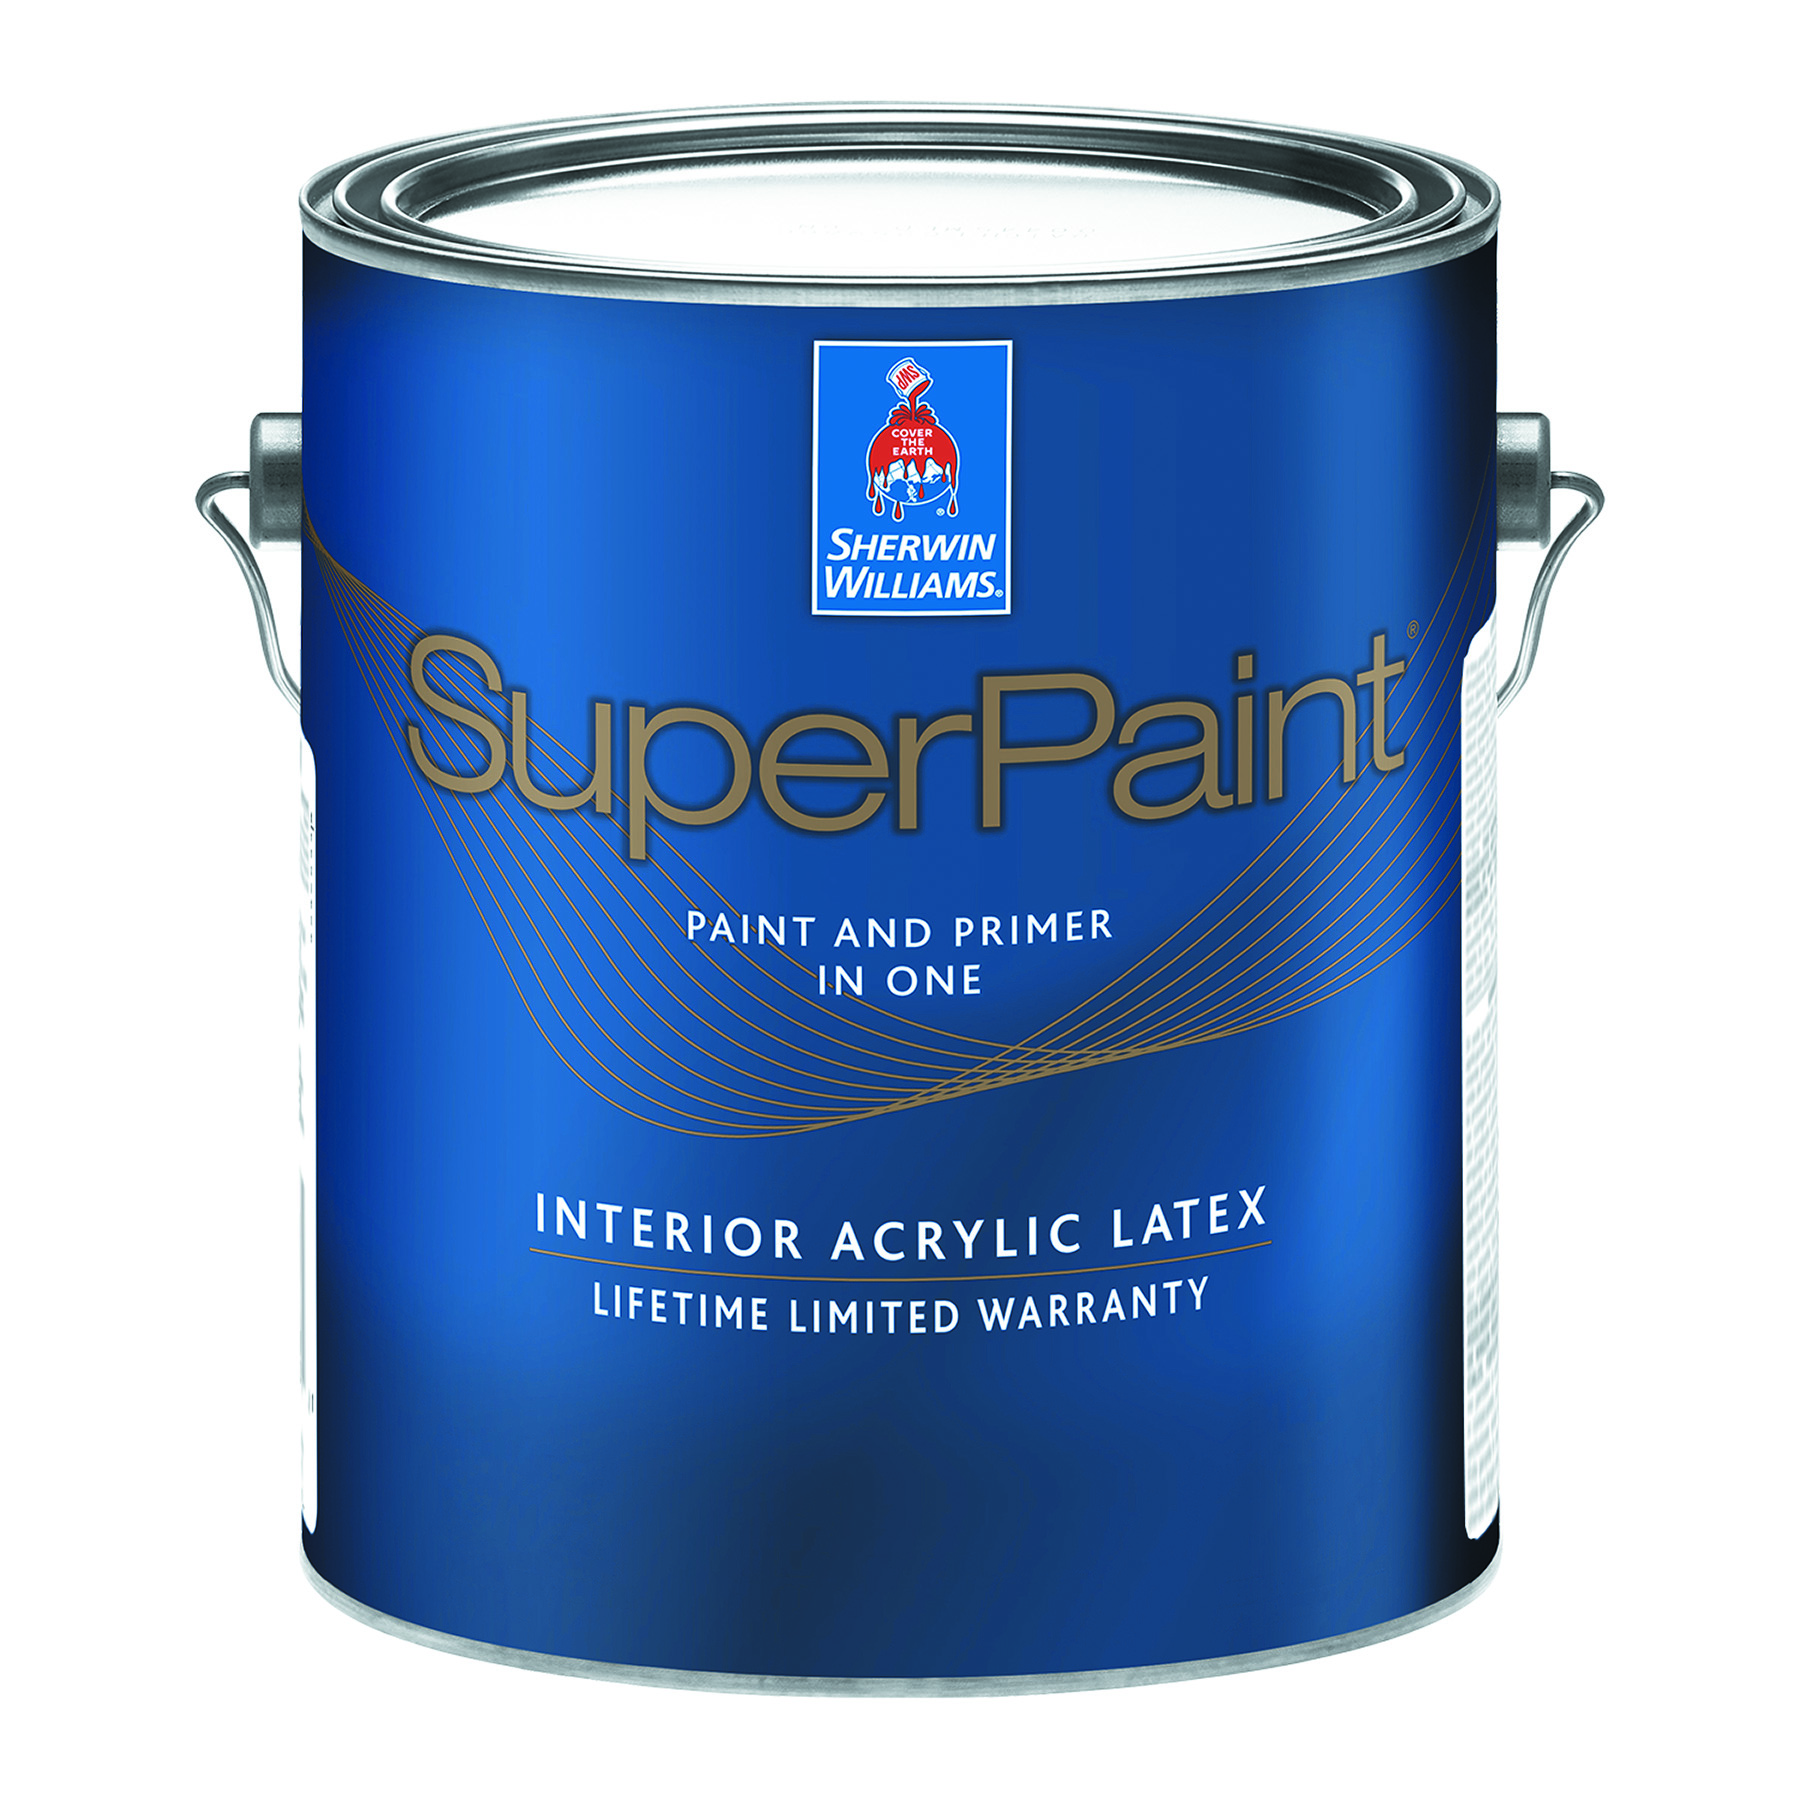 Sherwin-Williams' SuperPaint Offers Enhanced Hide, Durability